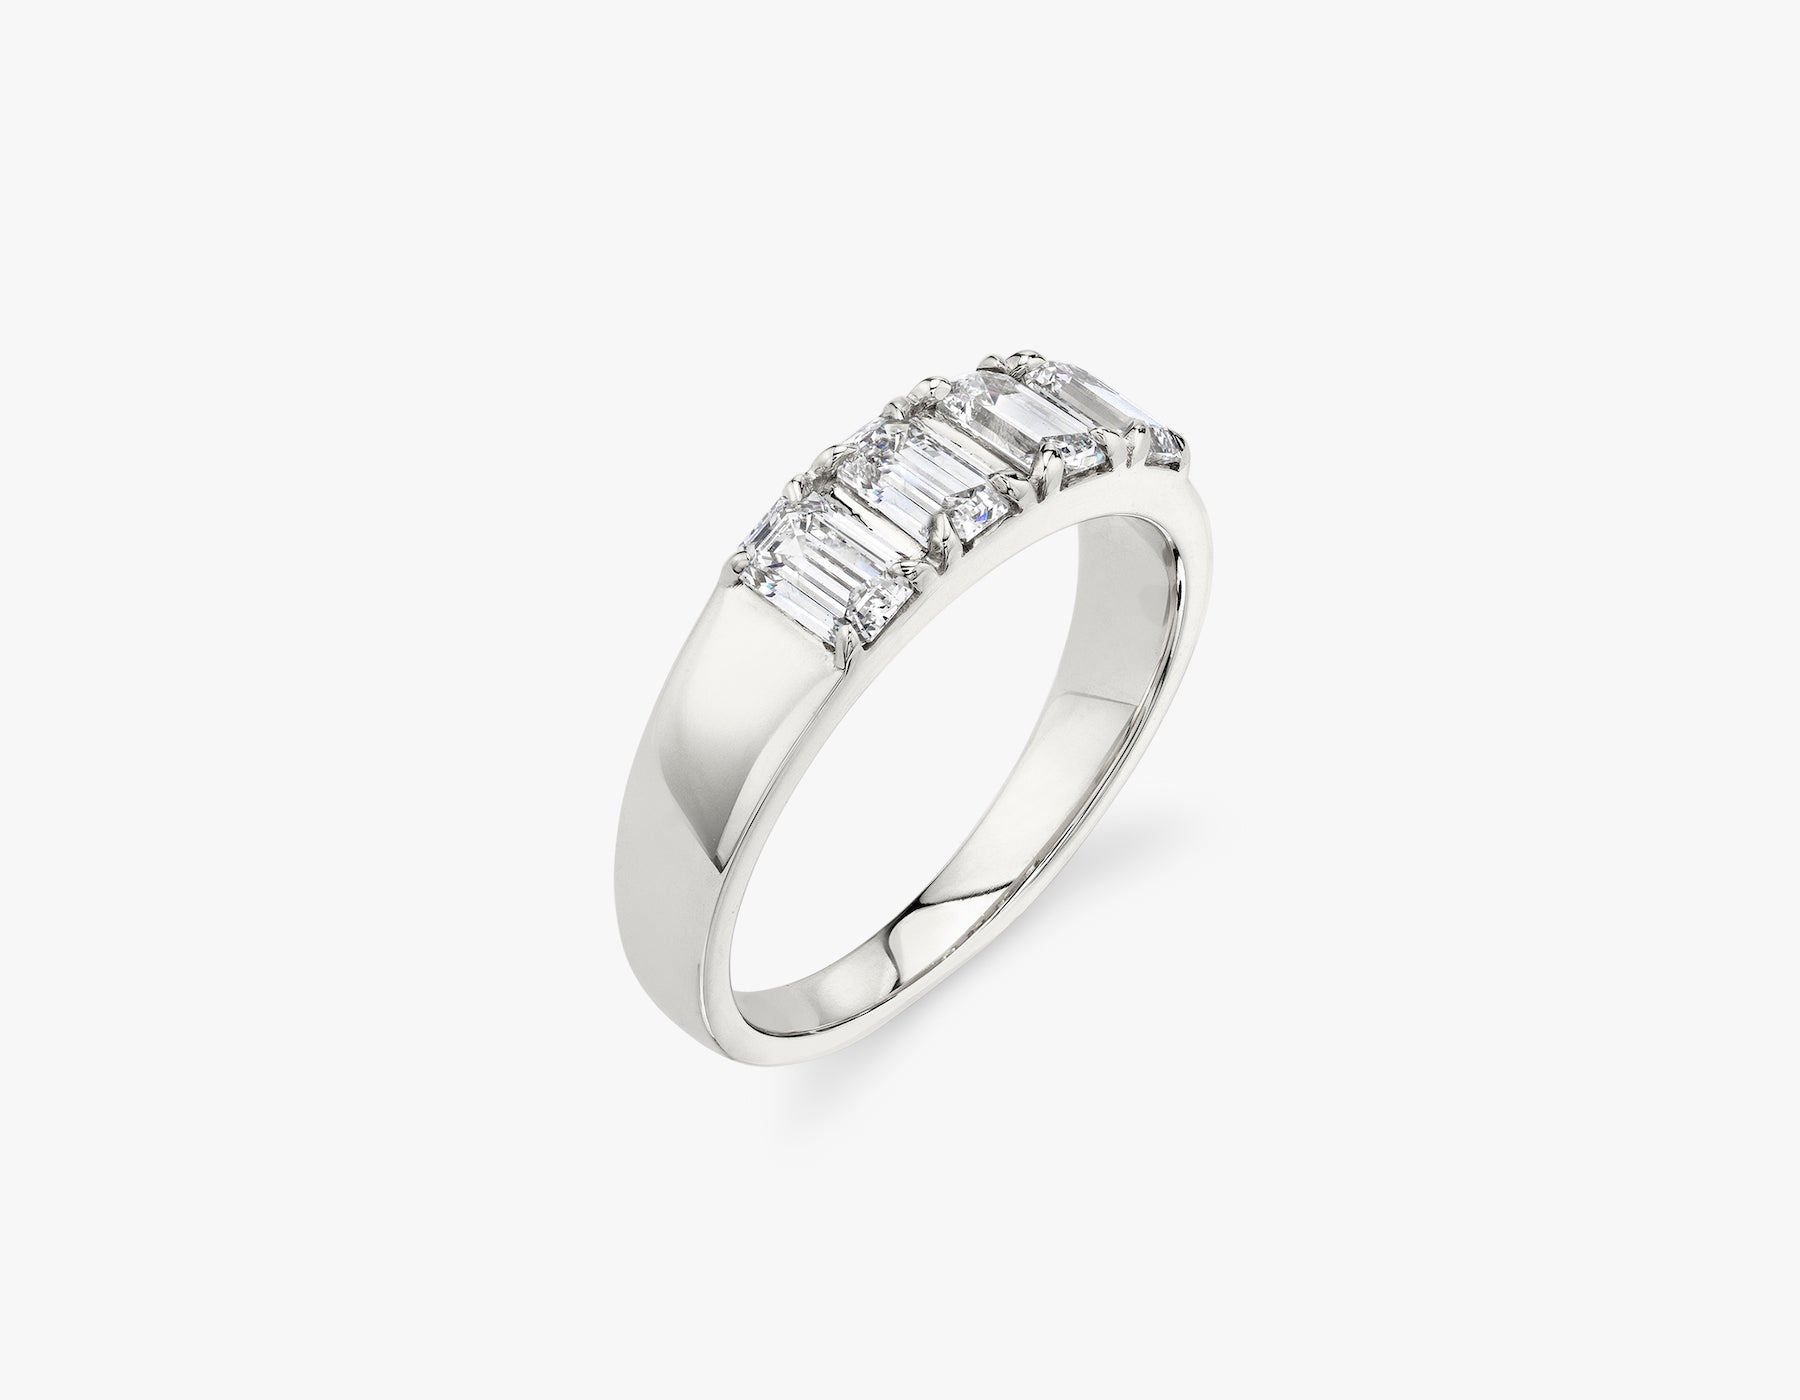 Vrai classic elegant Emerald Diamond Tetrad Band .25ct Emerald Diamond Ring, 14K White Gold